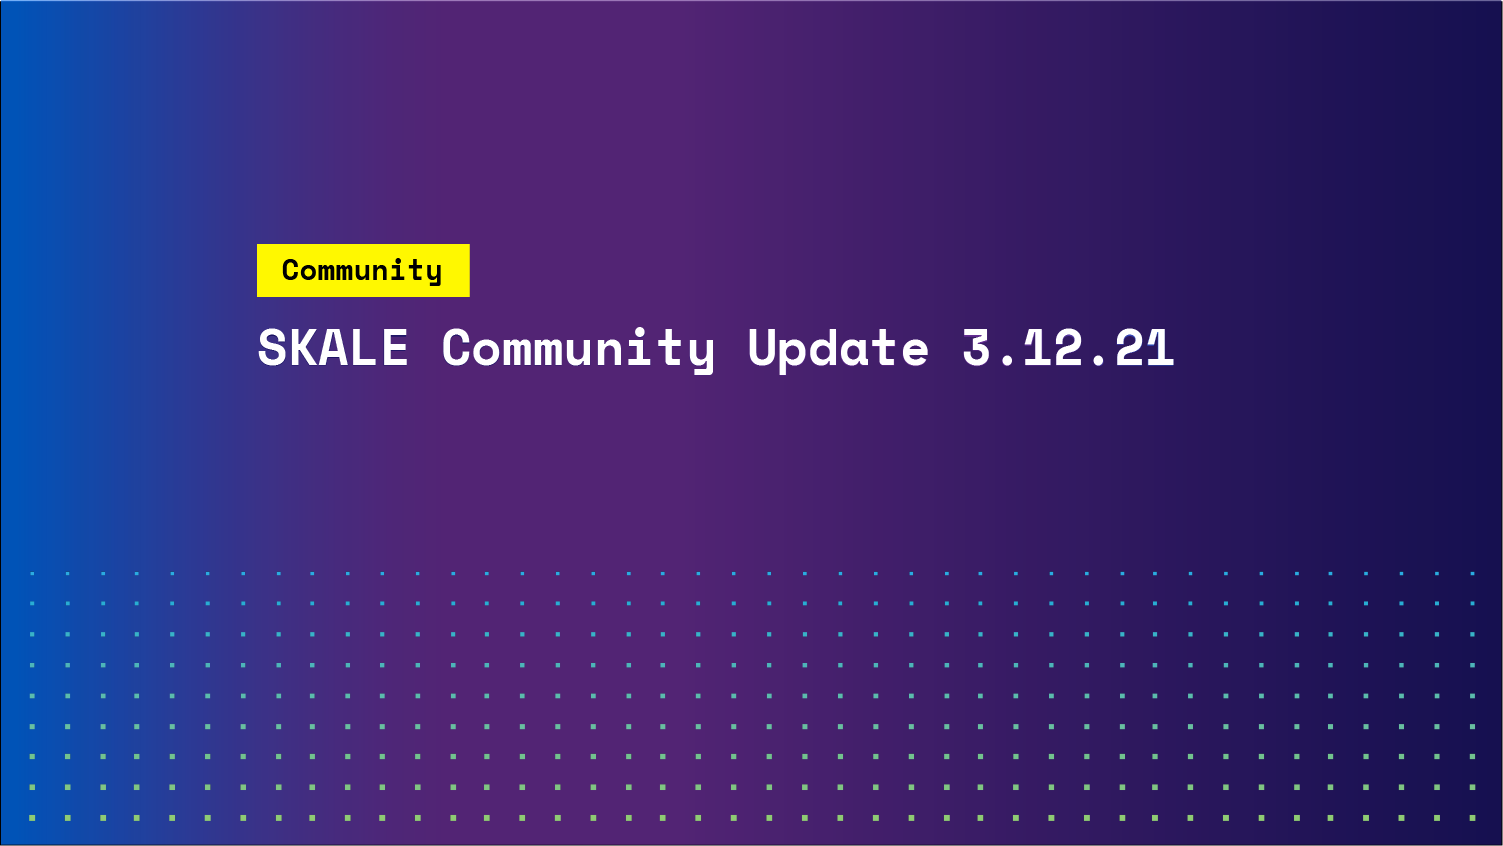 SKALE community update 3.12.2021